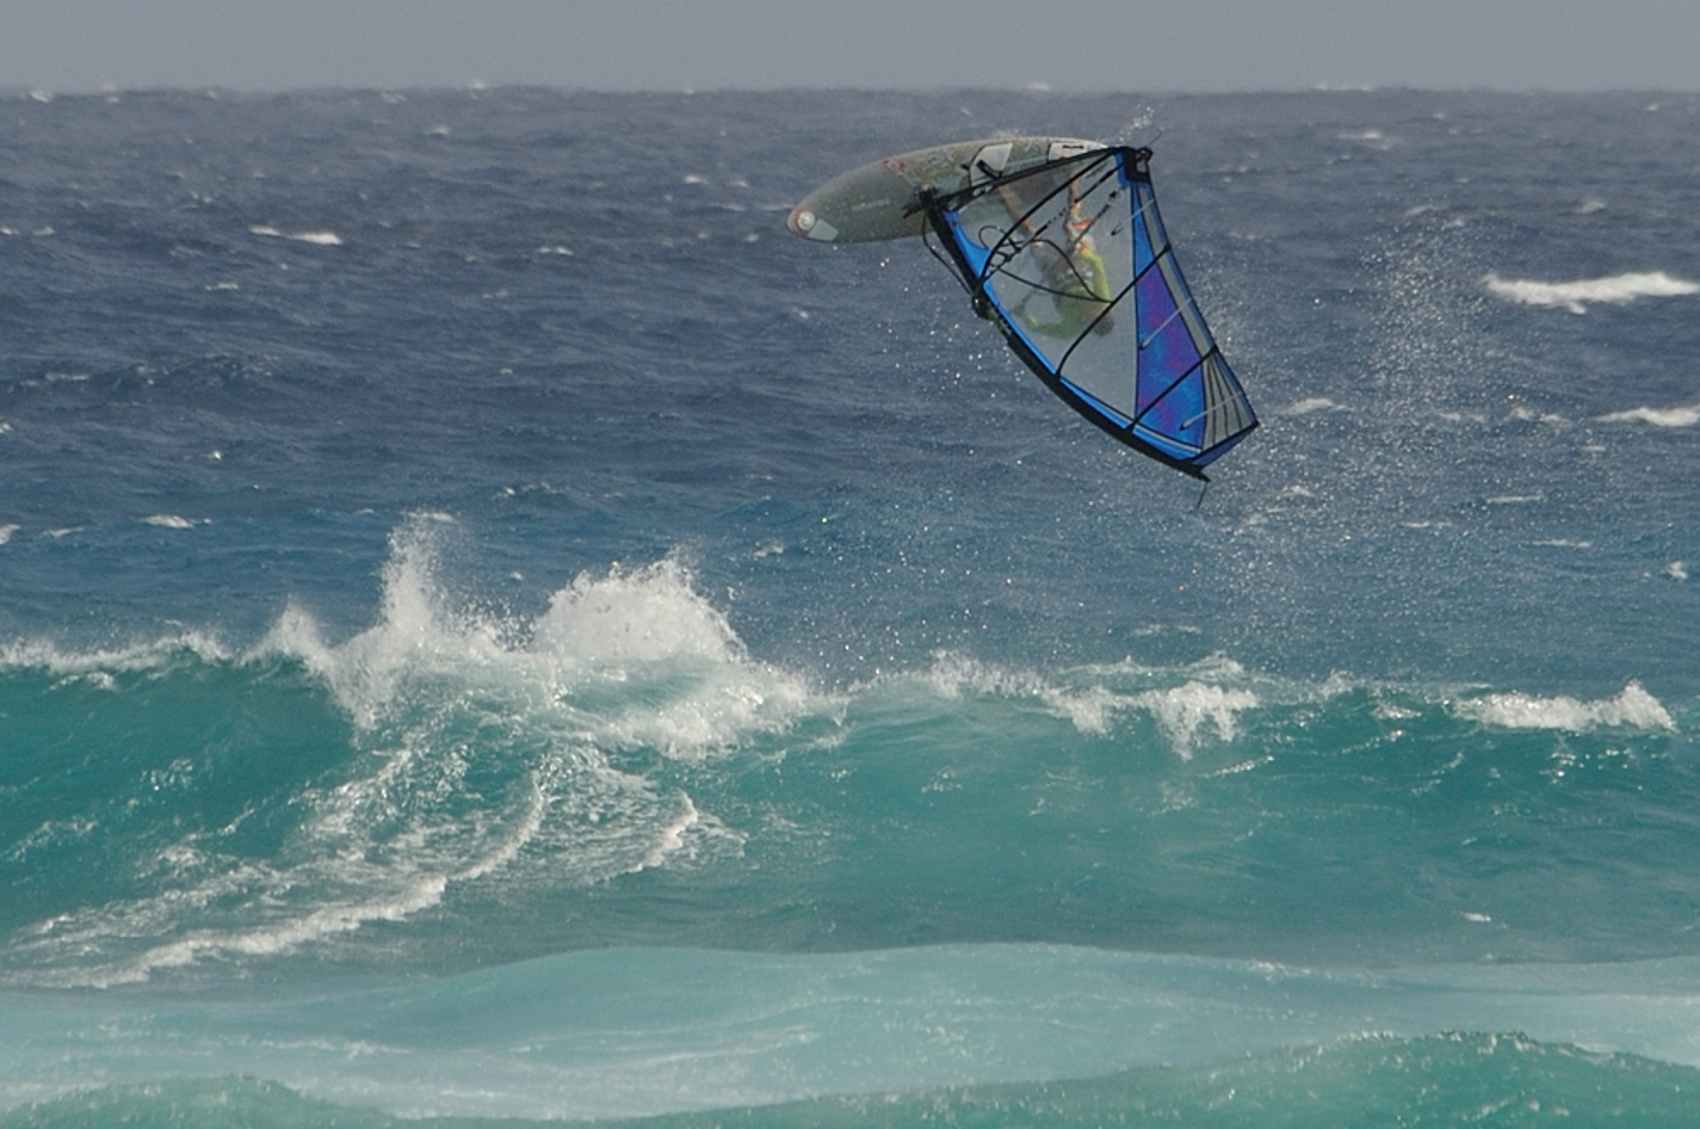 Windsurfing at Silver Sands